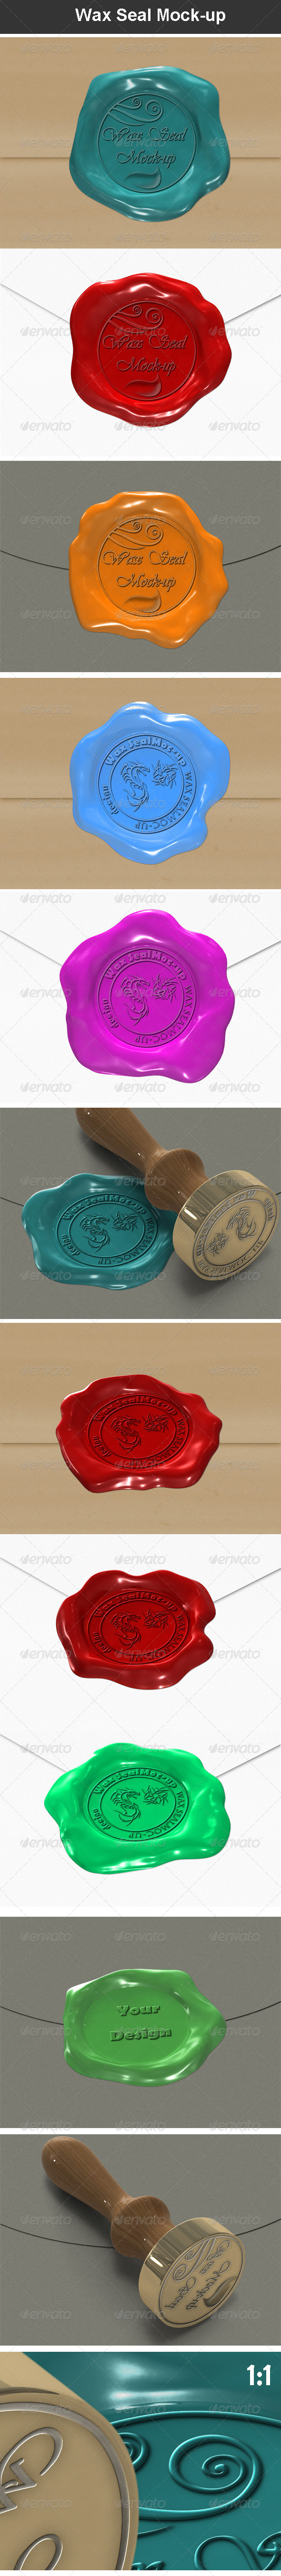 Wax Seal Mock-up - Logo Product Mock-Ups